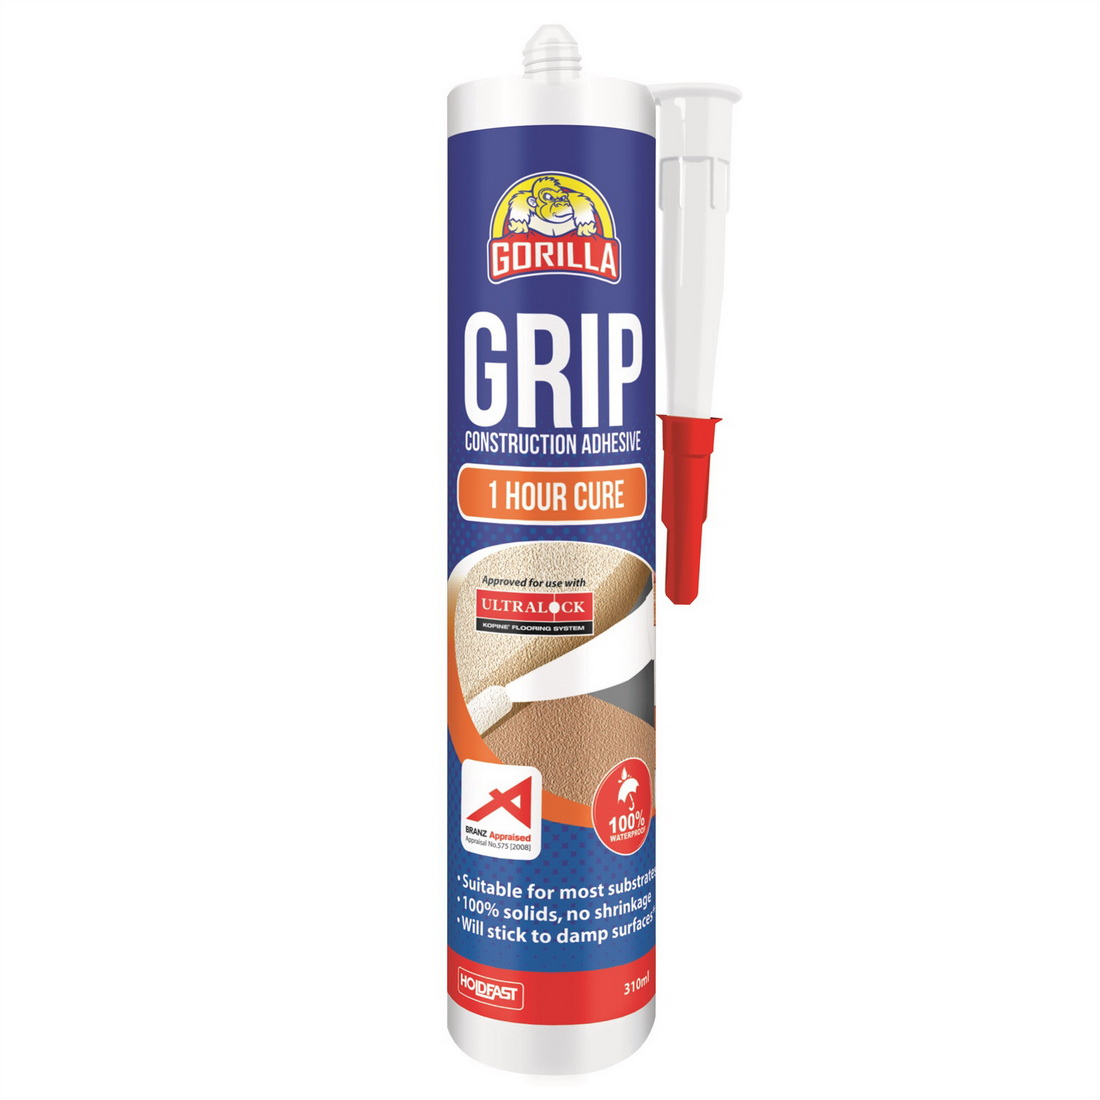 Grip 310mL 1 Hour Cure Construction Adhesive Translucent